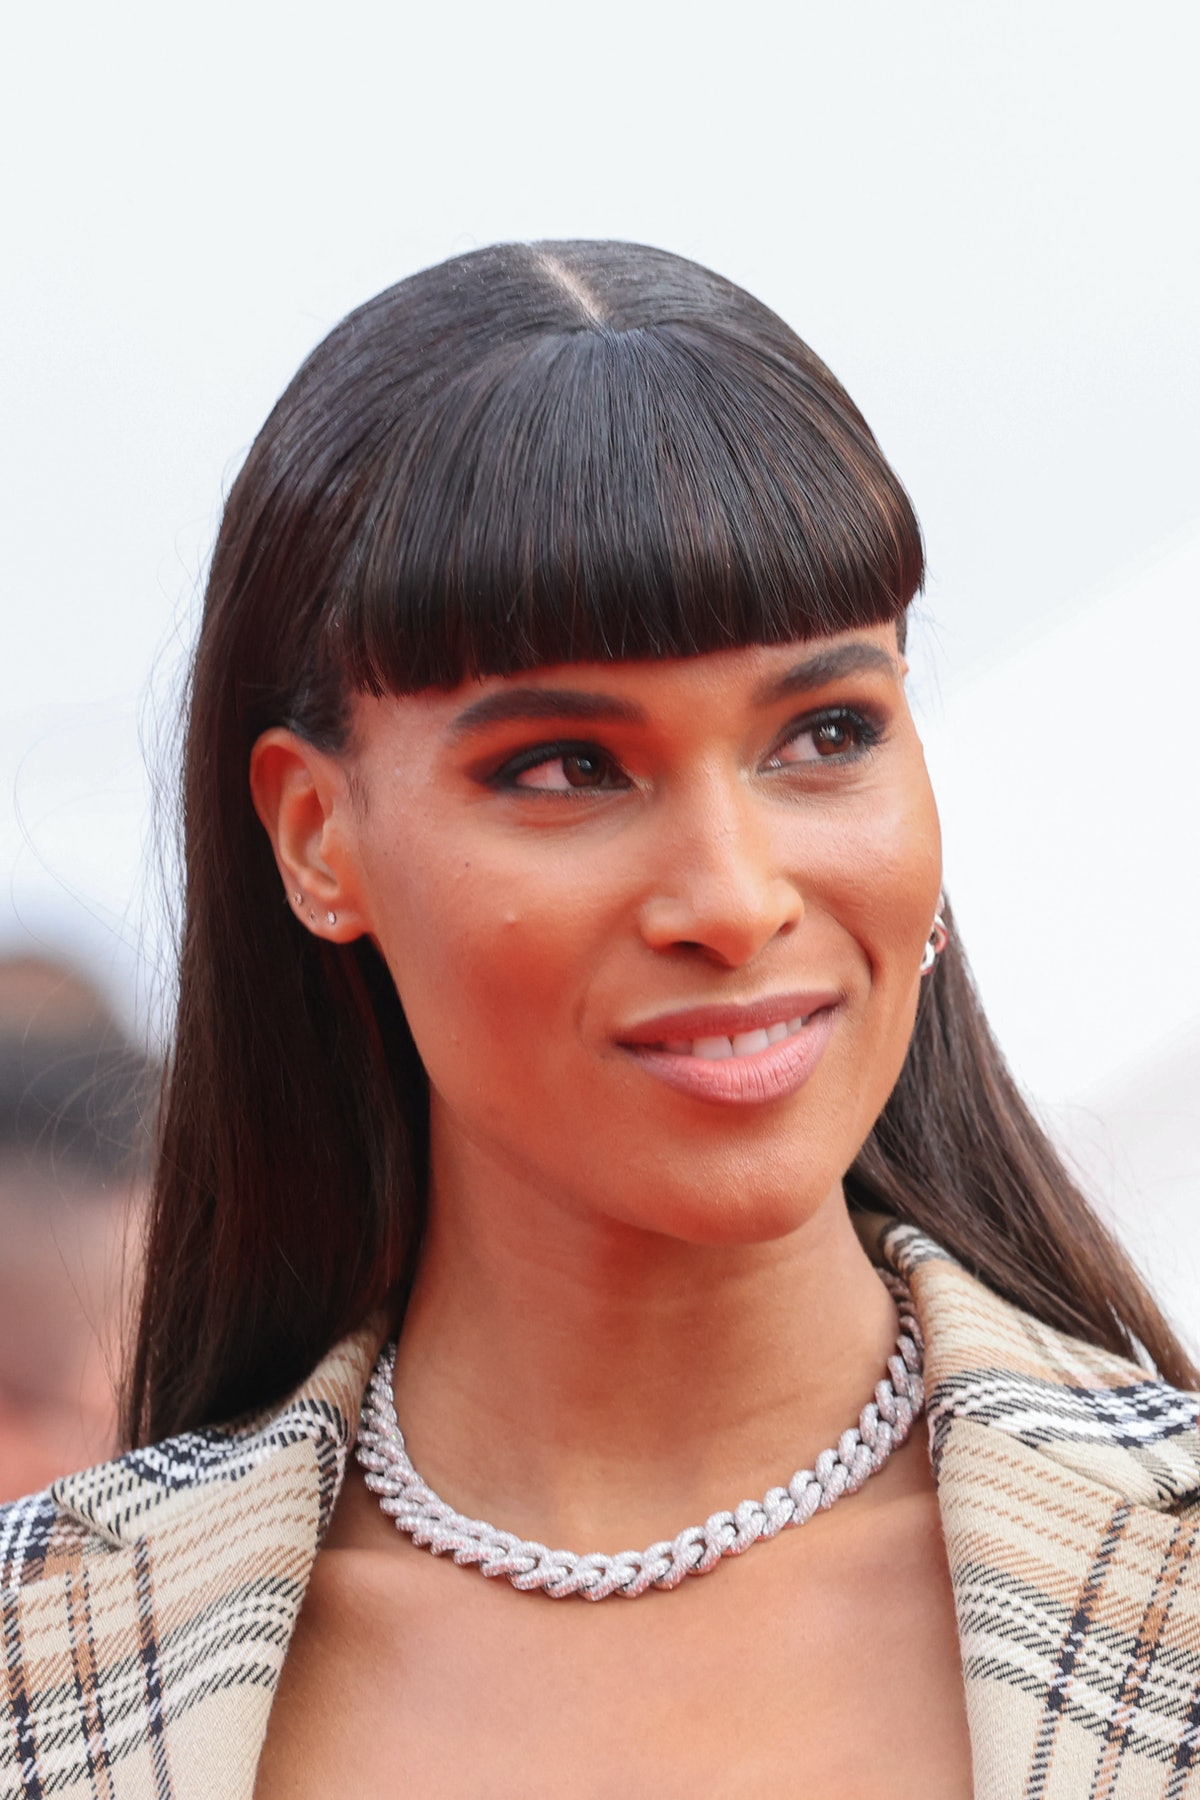 """French model Cindy Bruna arrives for the screening of the film """"Les Intranquilles (The Restless)"""" at the 74th edition of the Cannes Film Festival in Cannes, southern France, on July 16, 2021. (Photo by Valery HACHE / AFP) (Photo by VALERY HACHE/AFP via Getty Images)"""